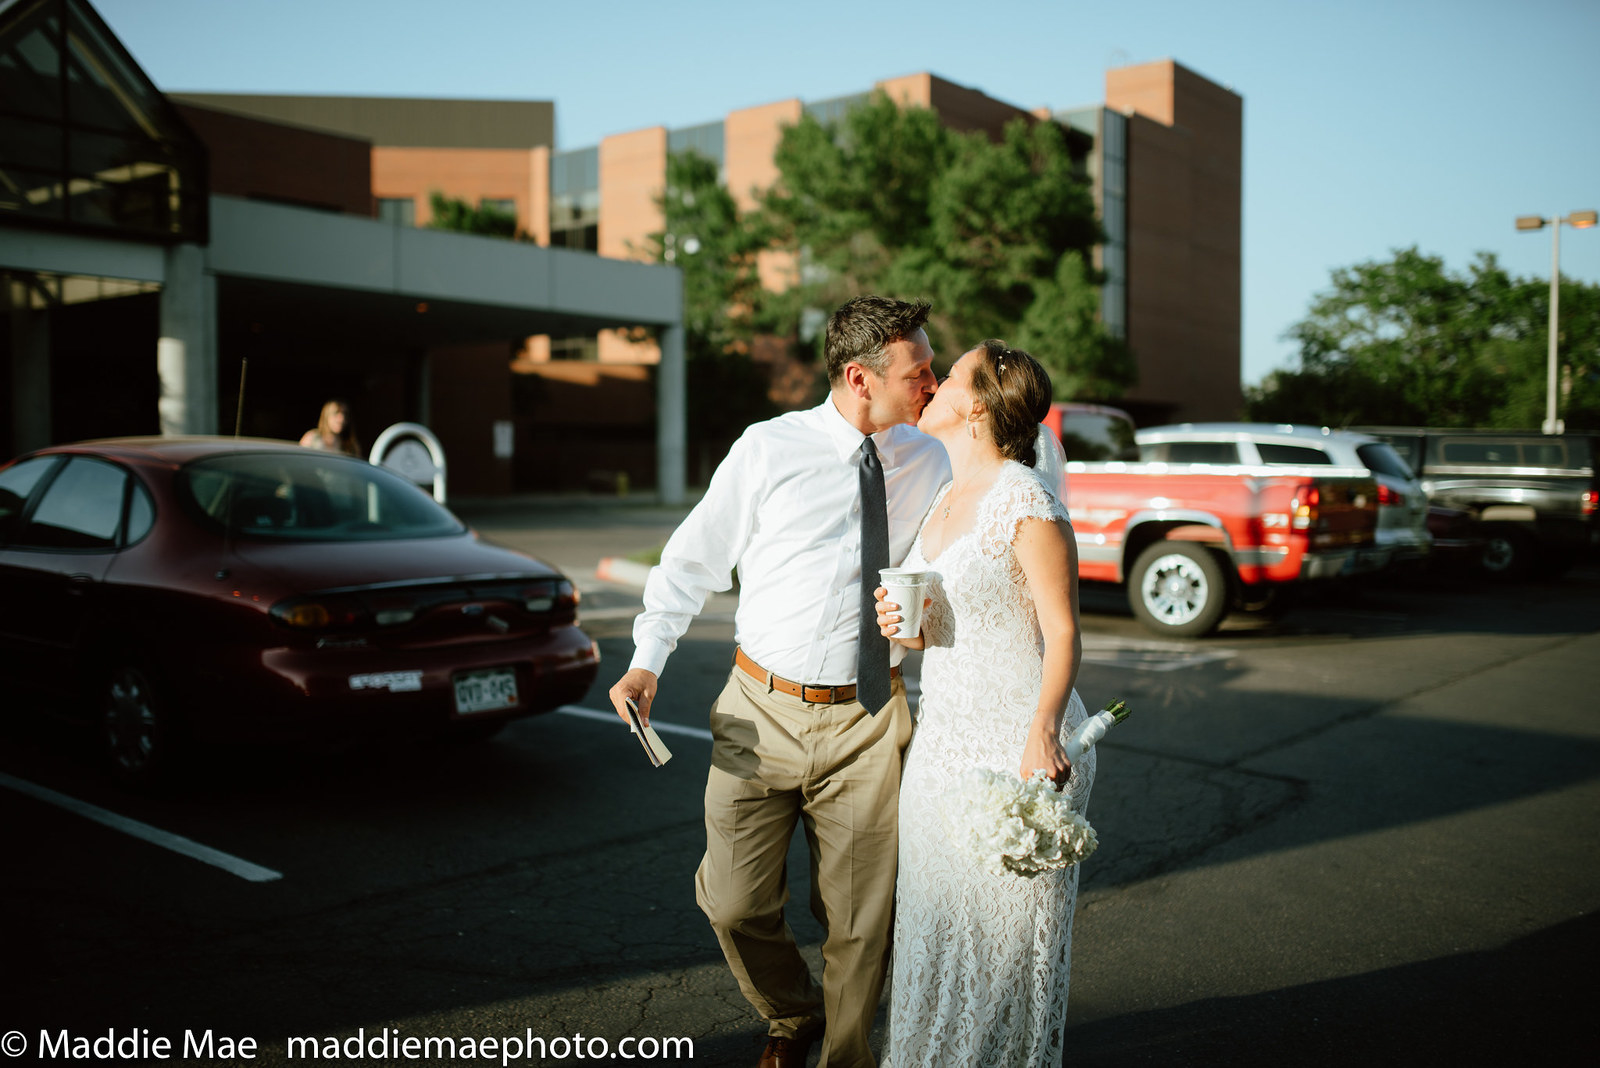 Benson was released after less than 20 minutes in the ER, which means he and his new wife made it back in time for most of their wedding reception.